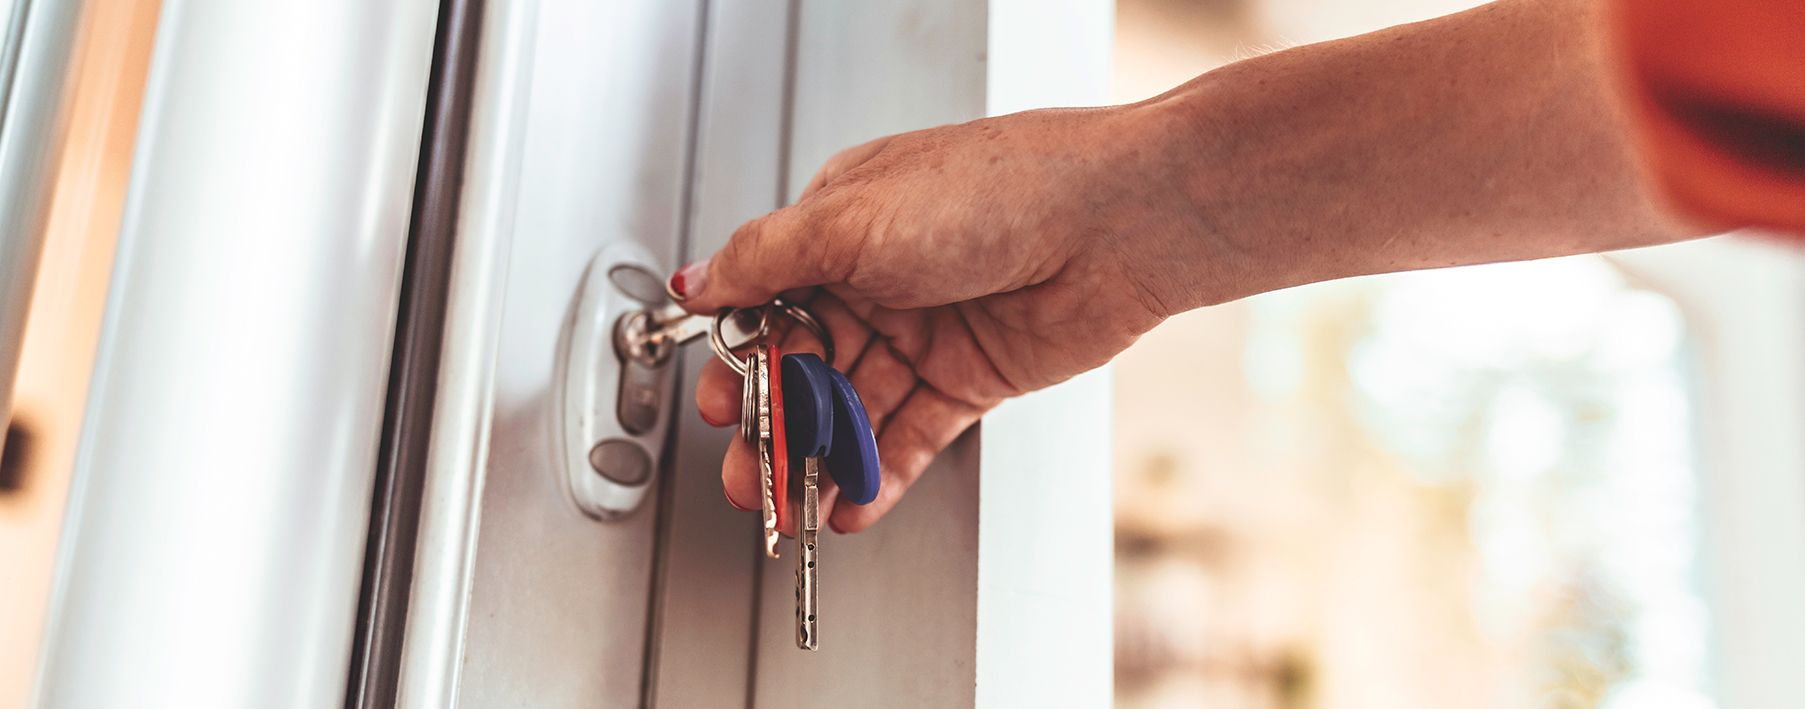 Does Homeowners Insurance Cover Theft? | Hippo